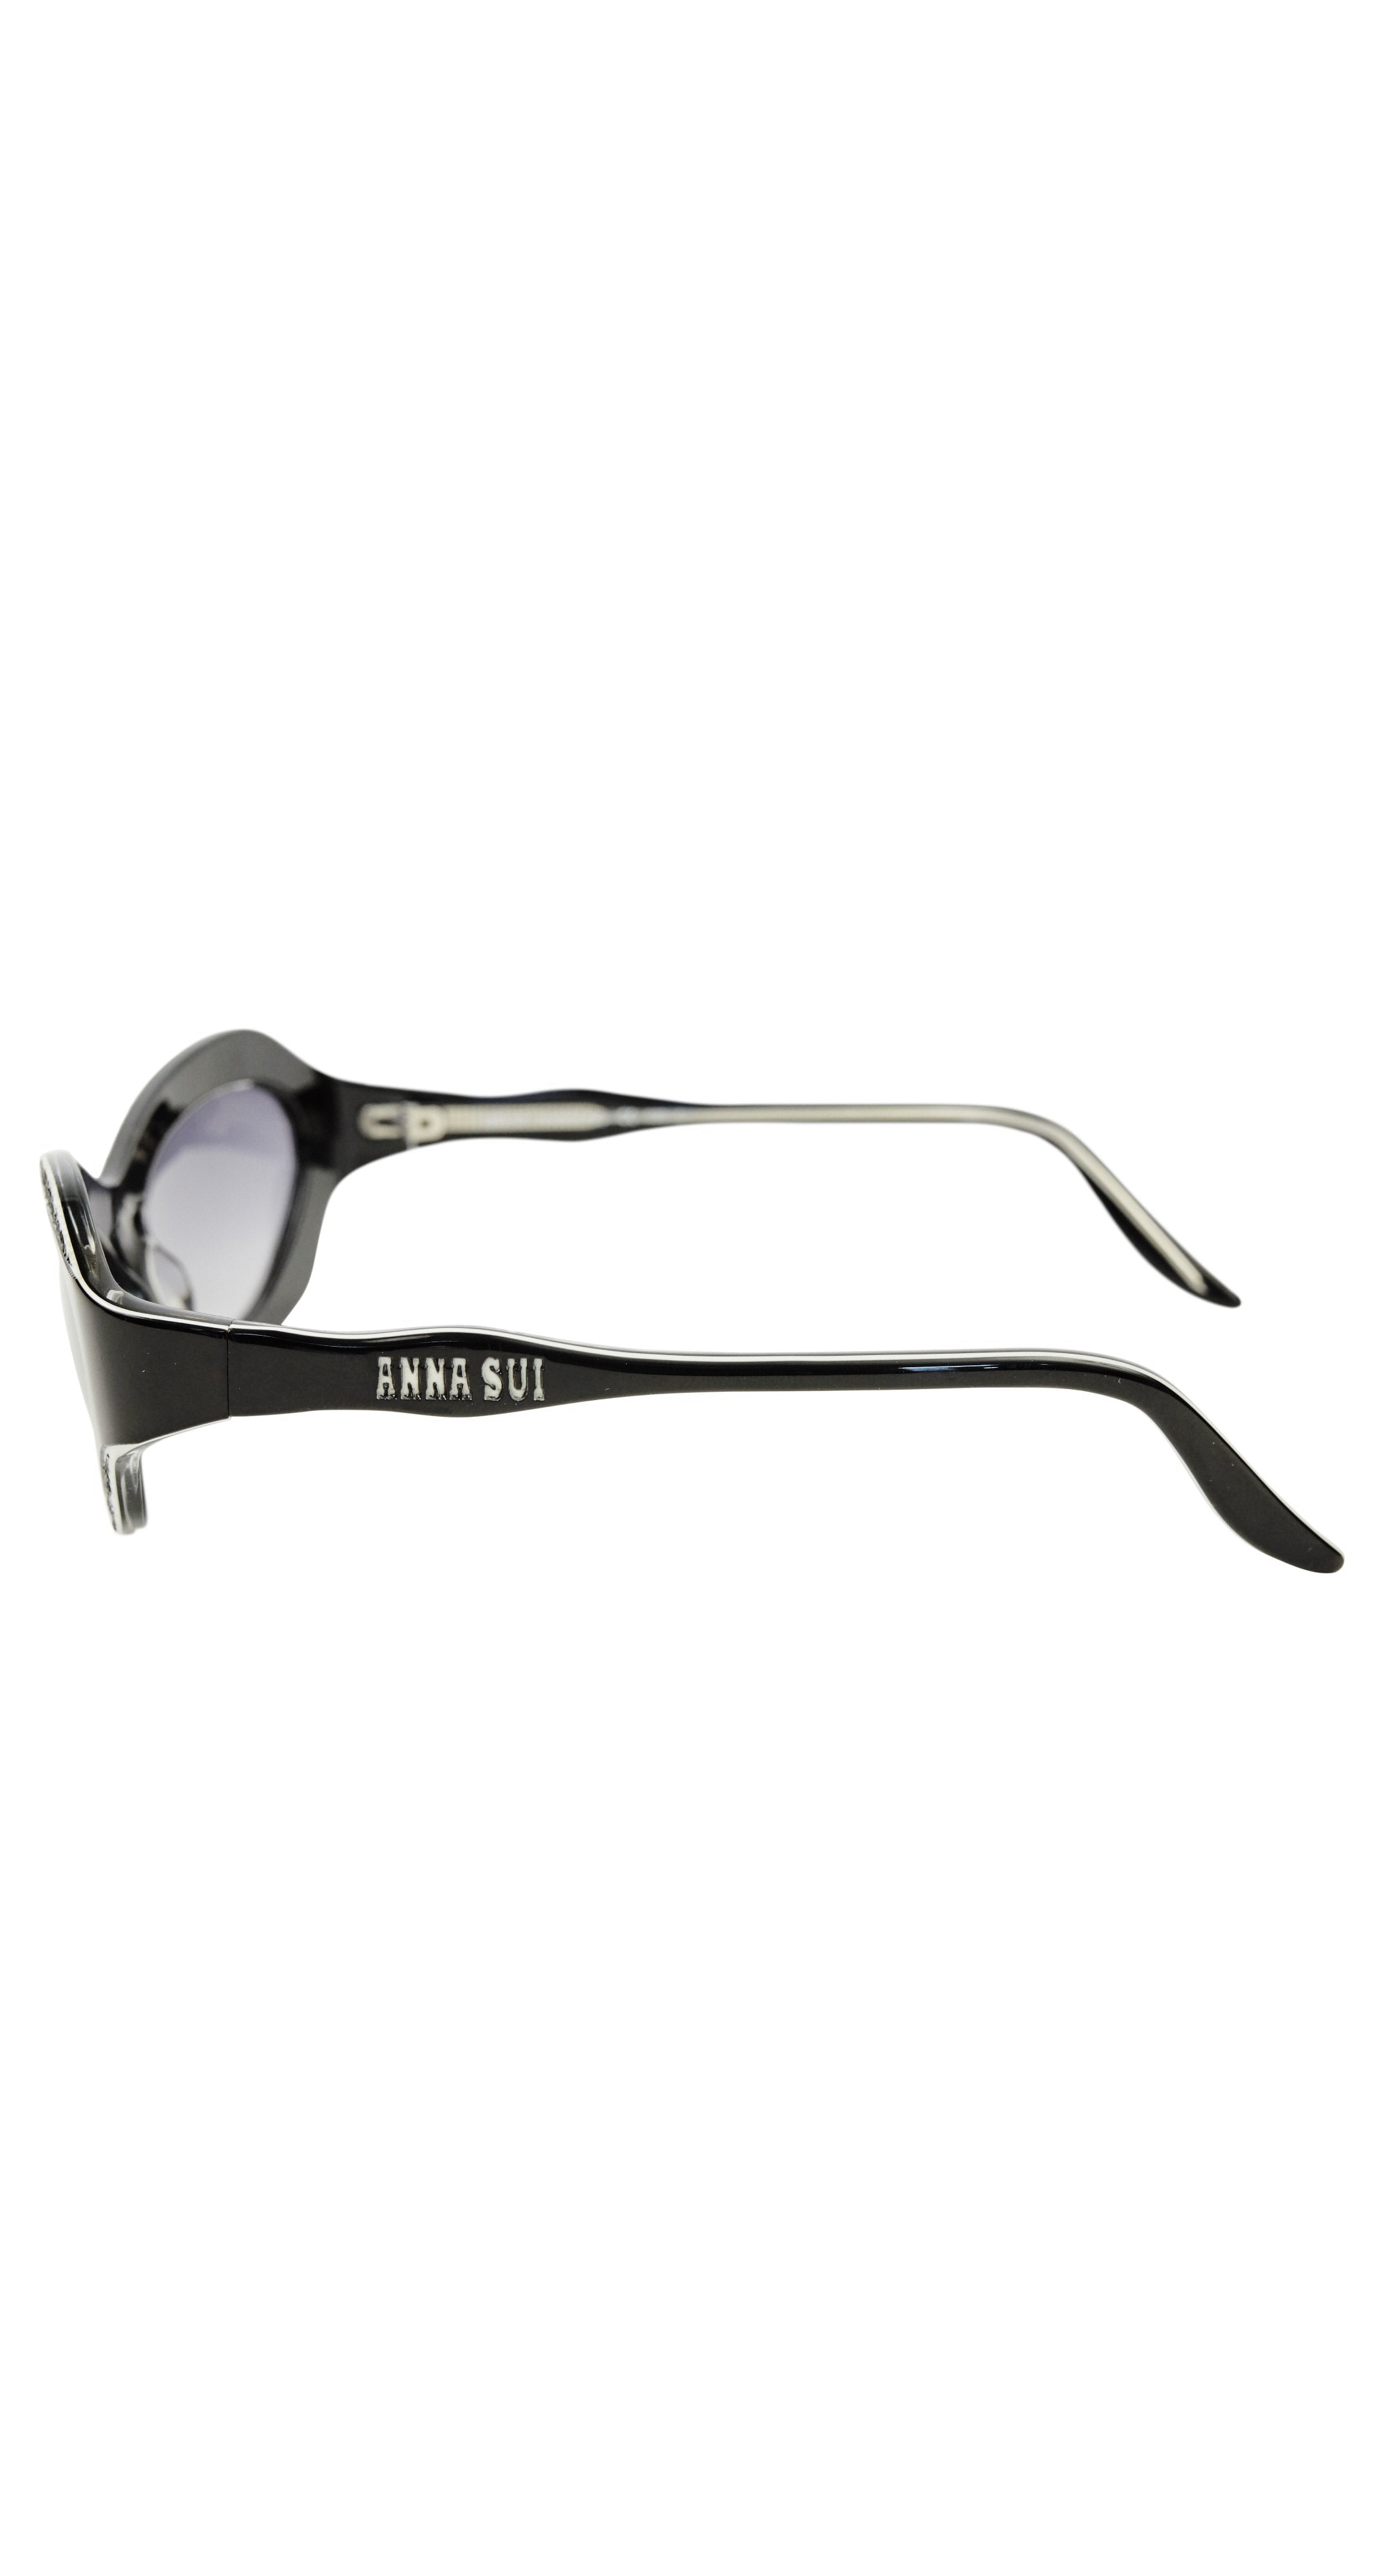 1950s Style Black & White Cat Eye Sunglasses Mod. AS50101